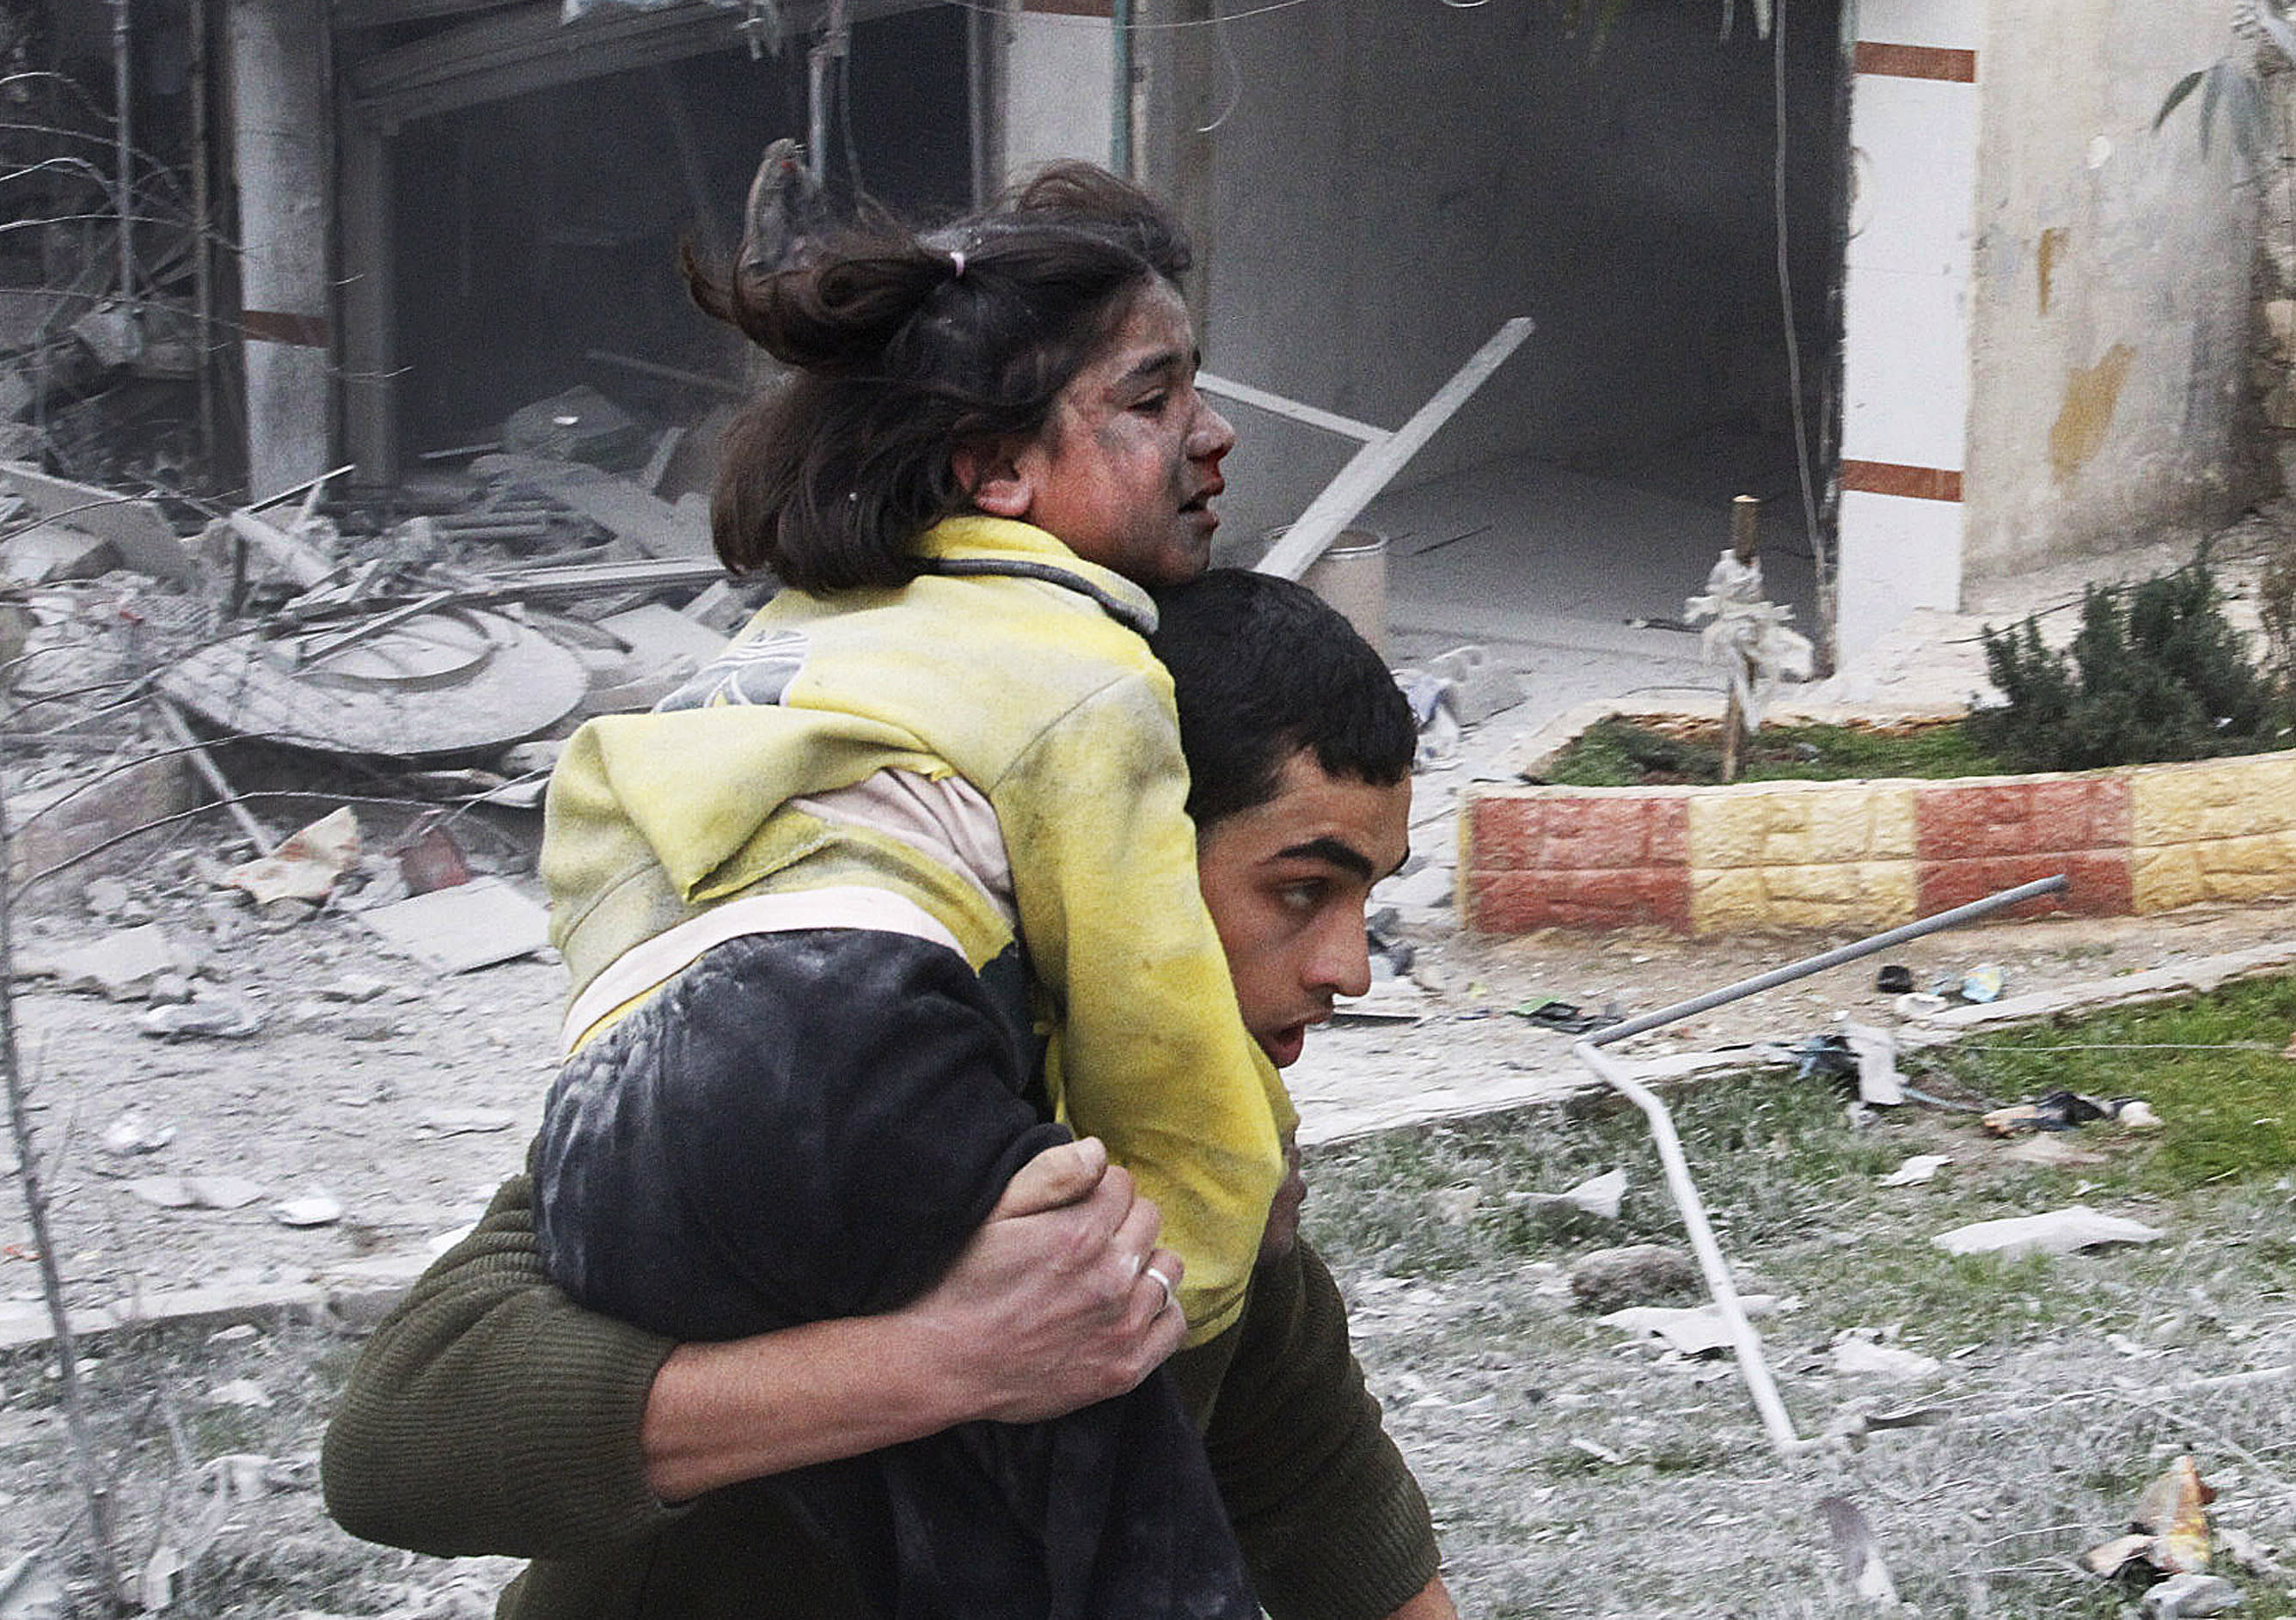 Syrian man carries his sister who was wounded in a government airstrike hit the neighborhood of Ansari, in Aleppo, Syria, Sunday, Feb. 3, 2013. The Britain-based activist group Syrian Observatory for Human Rights, which opposes the regime, said government troops bombarded a building in Aleppo's rebel-held neighborhood of Eastern Ansari that killed over 10 people, including at least five children. (AP Photo/Abdullah al-Yassin)